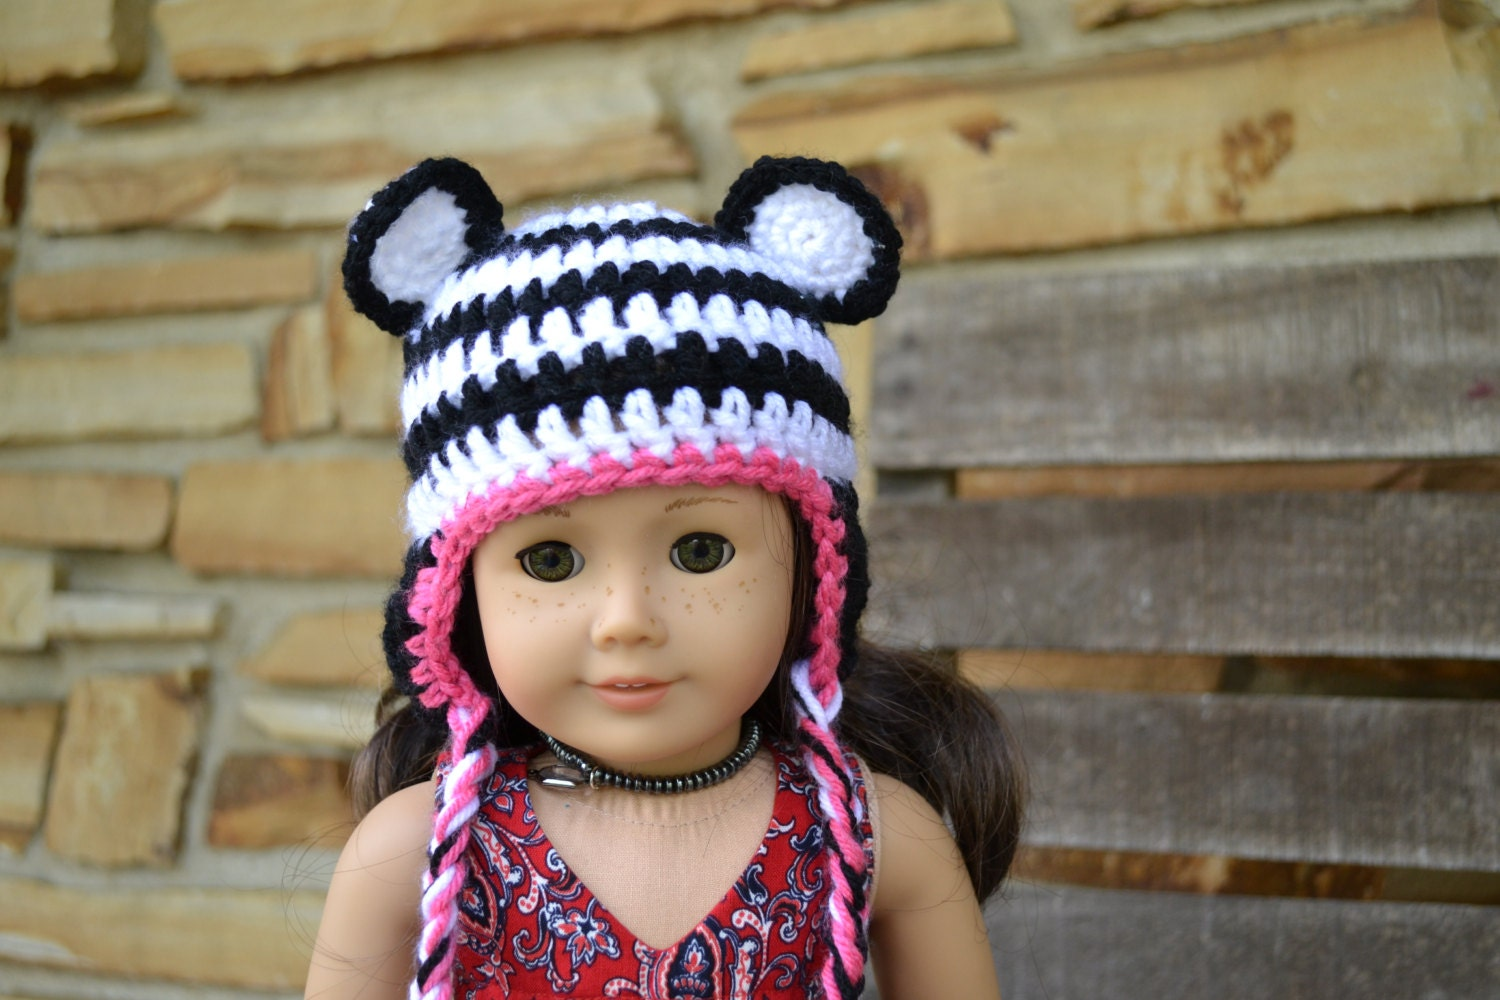 Crocheting Doll Clothes : 18 inch Doll Clothes Crocheted Beanie with by camelotstreasures